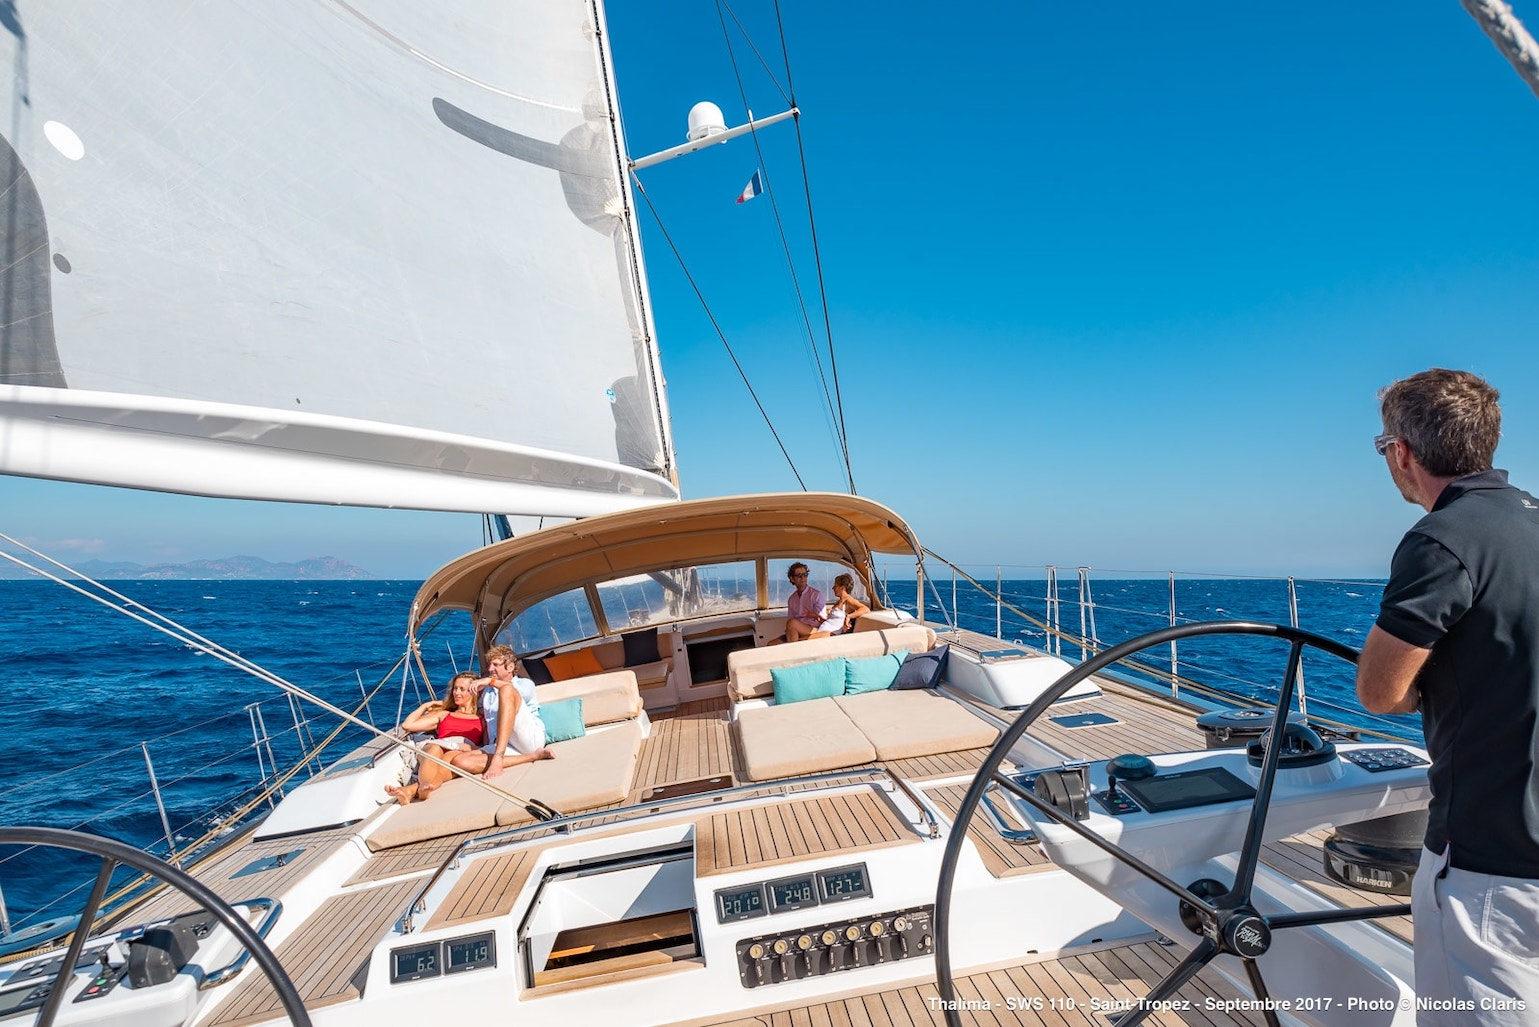 Best combination of Elegance and High Performance Sailing yacht